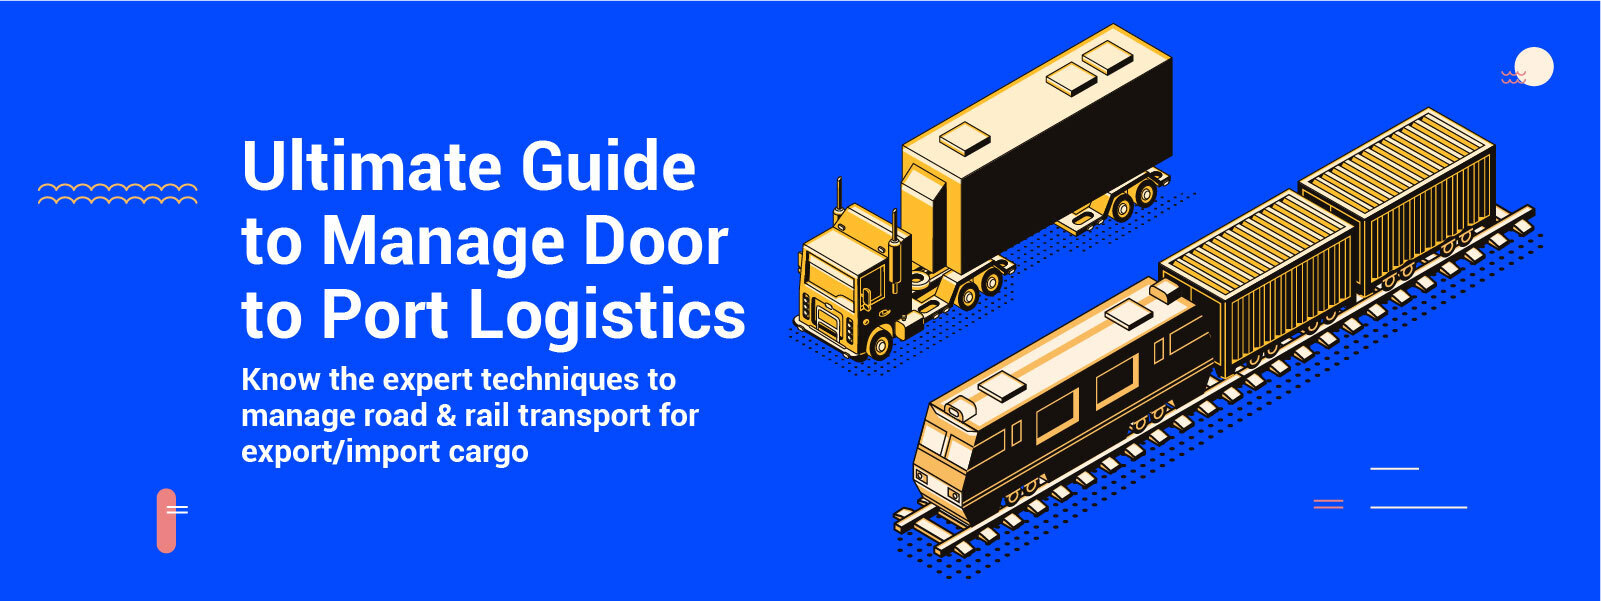 Complete Guide to Road, Rail & Barge Transport: What Exporters/Importers Need to Know